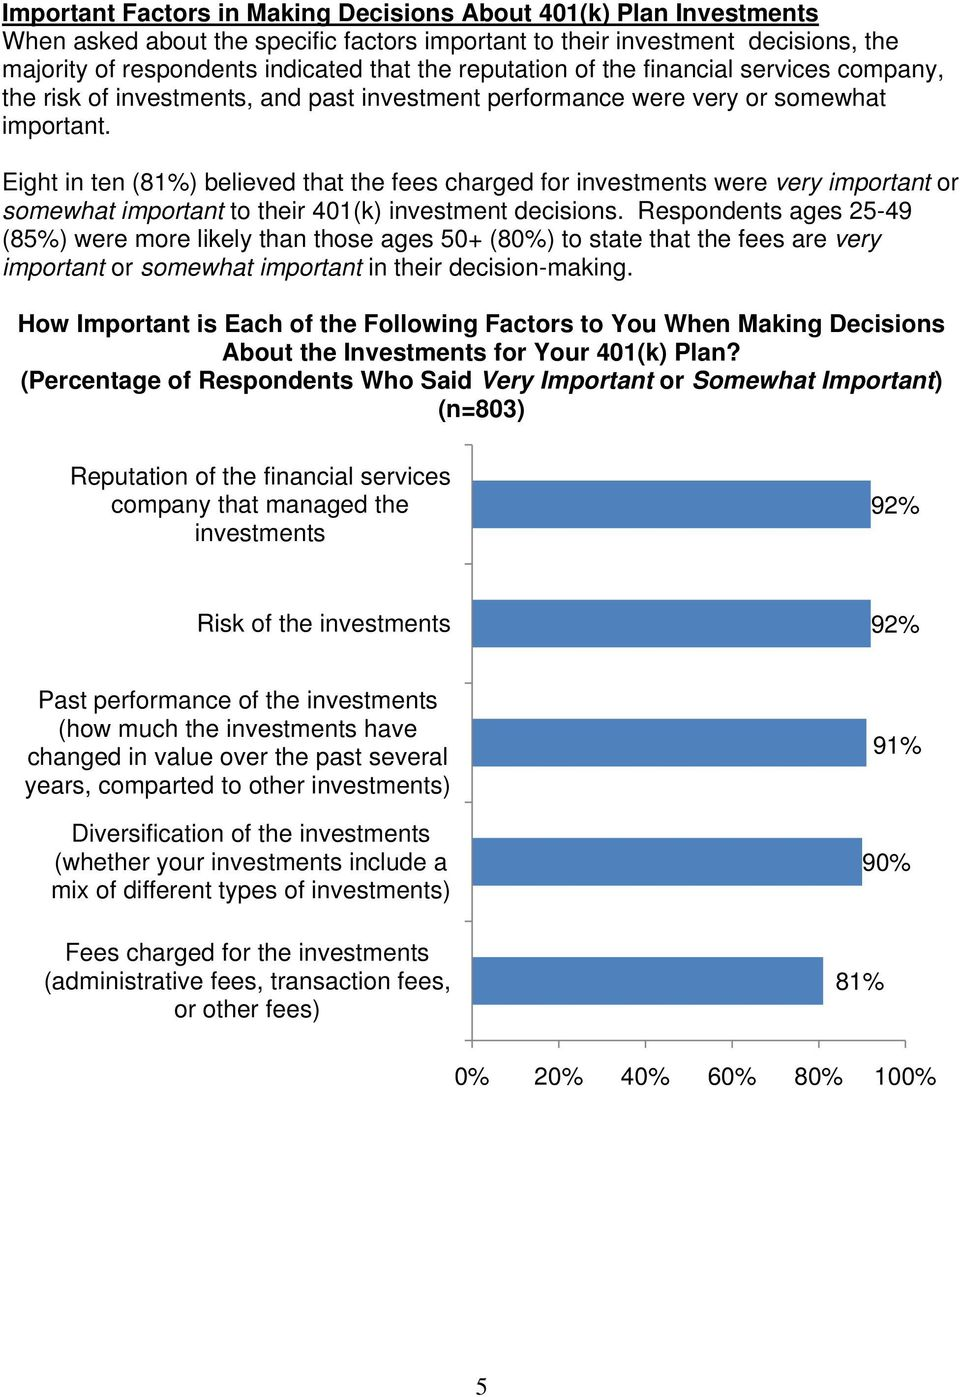 Eight in ten (81) believed that the fees charged for investments were very important or somewhat important to their 401(k) investment decisions.